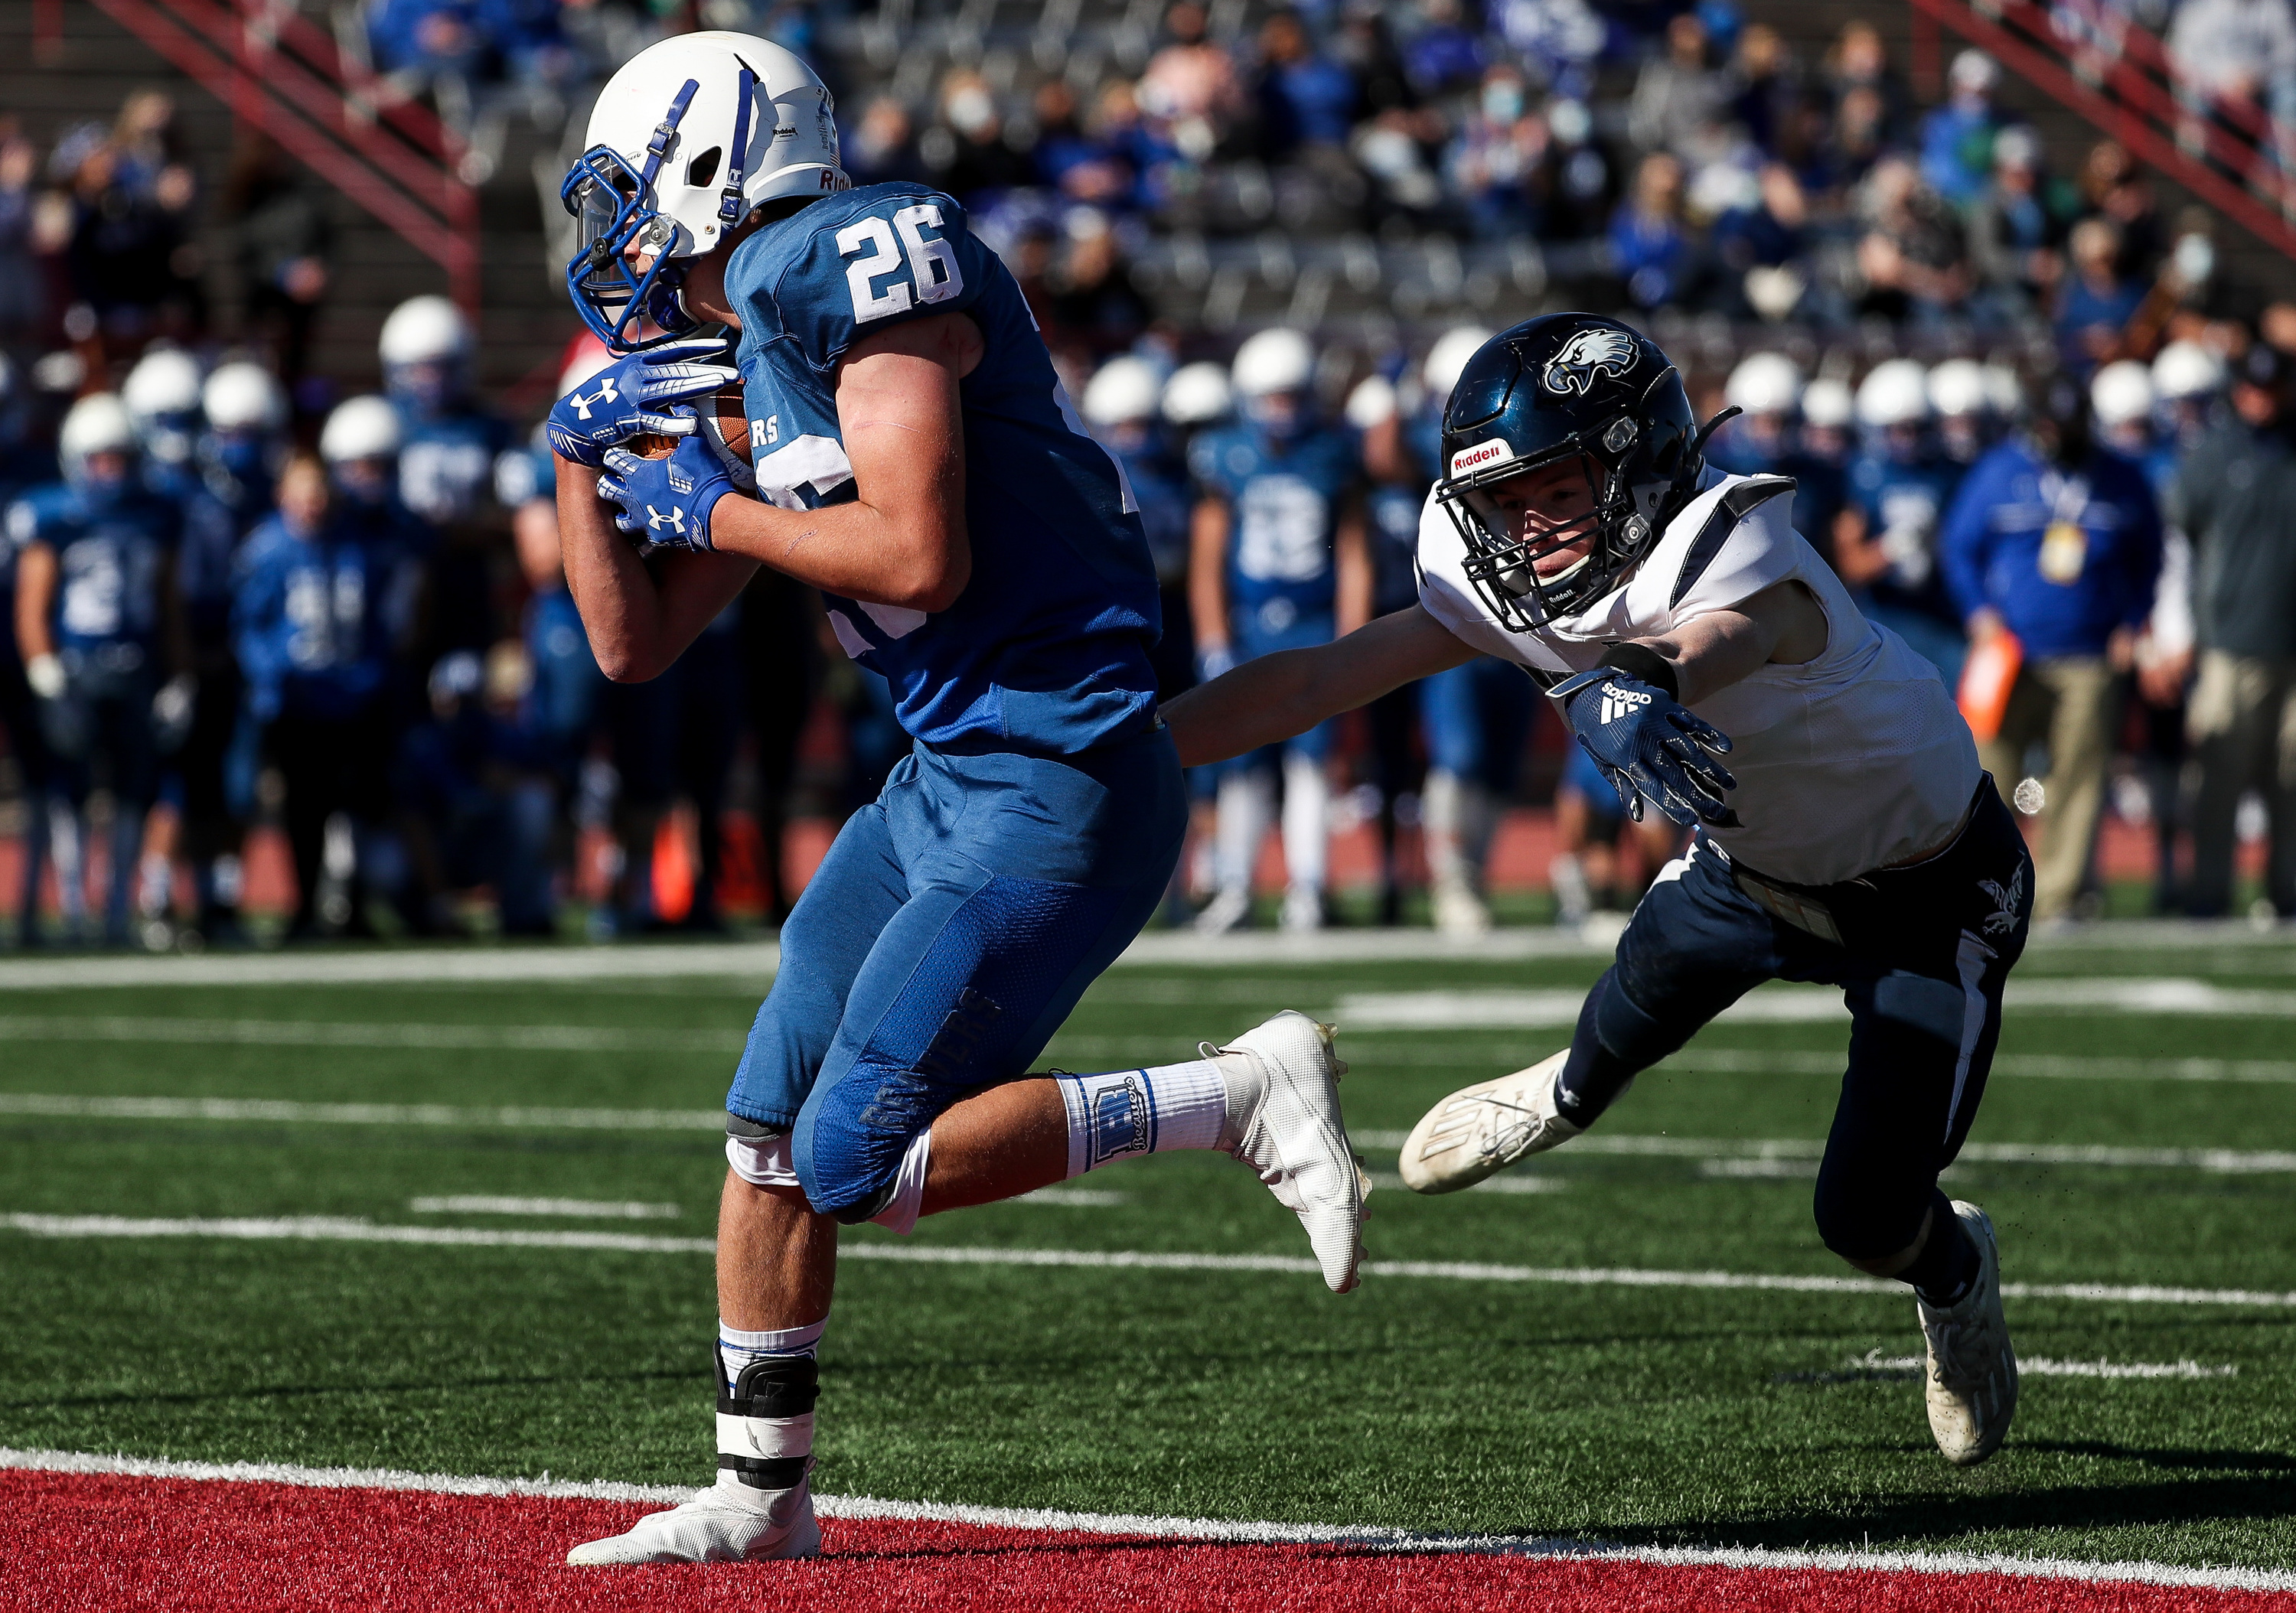 Beaver's EJ Allred runs a reception into the end zone ahead of Duchesne's Parker Crum, putting Beaver up 7-0 after the point after touchdown, in the 2A football championship game at Dixie State University in St. George on Saturday, Nov. 14, 2020.